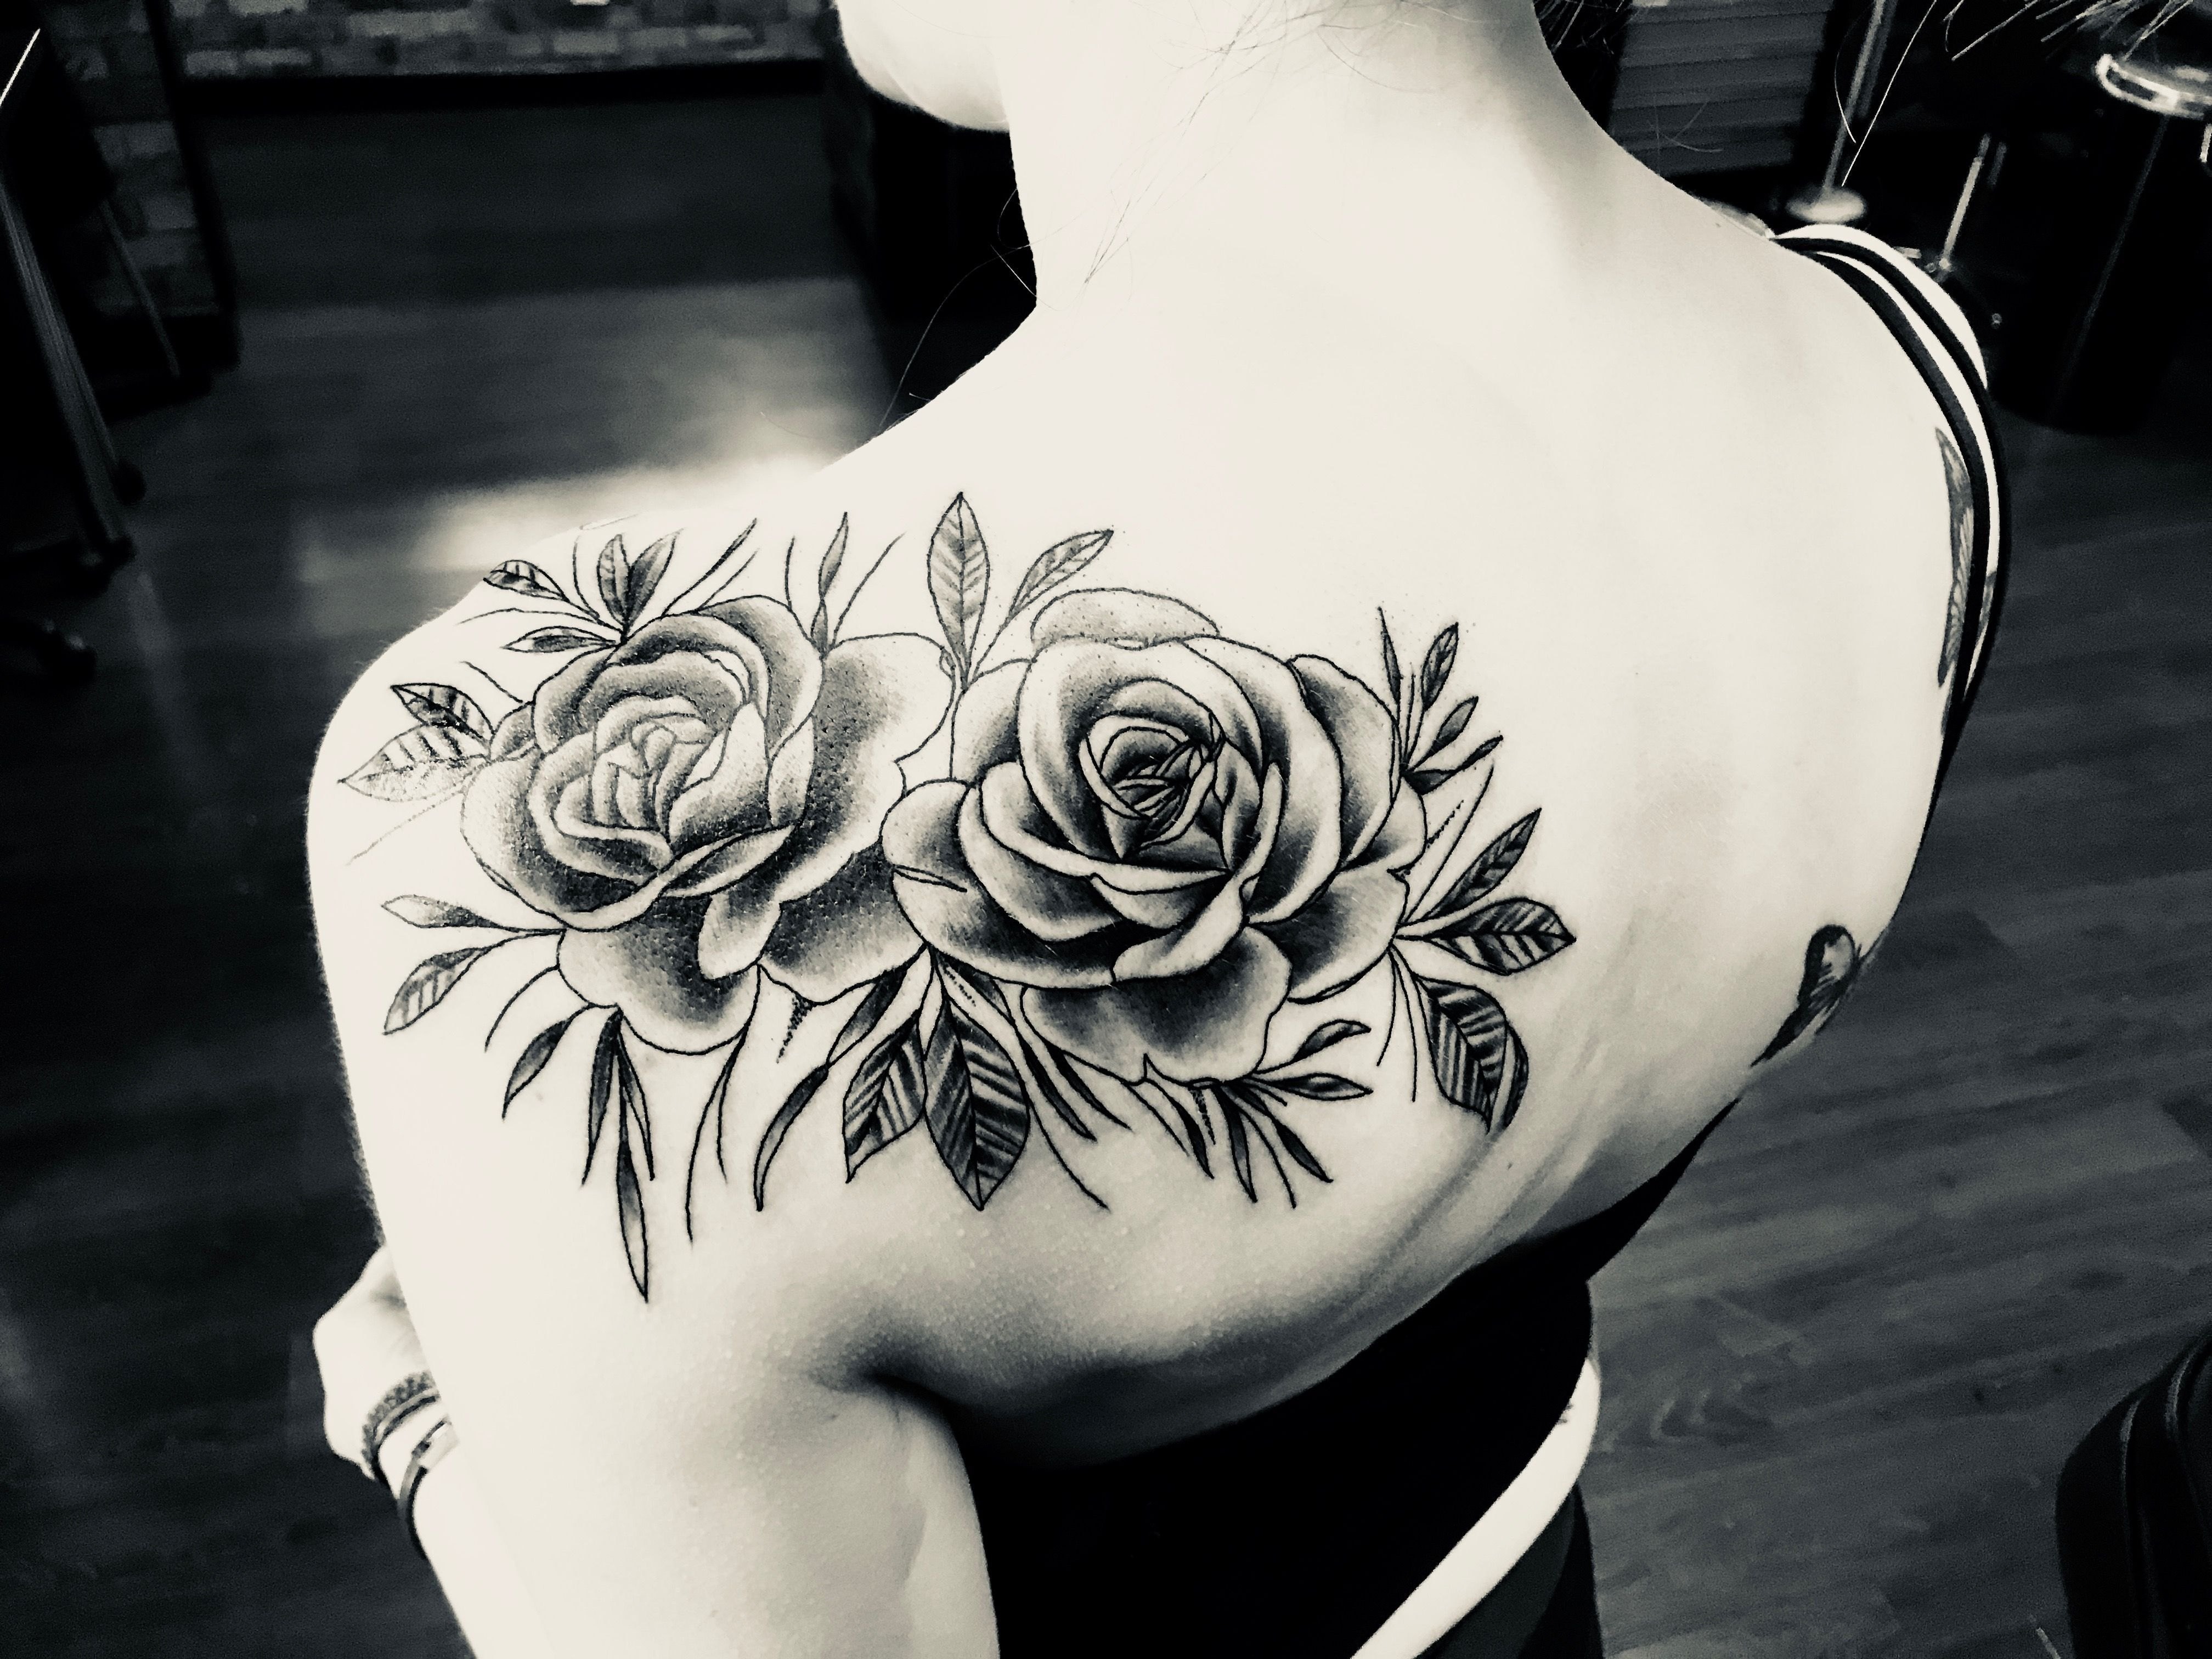 Rose shoulder tattoo in black shading roseshouldertattoos